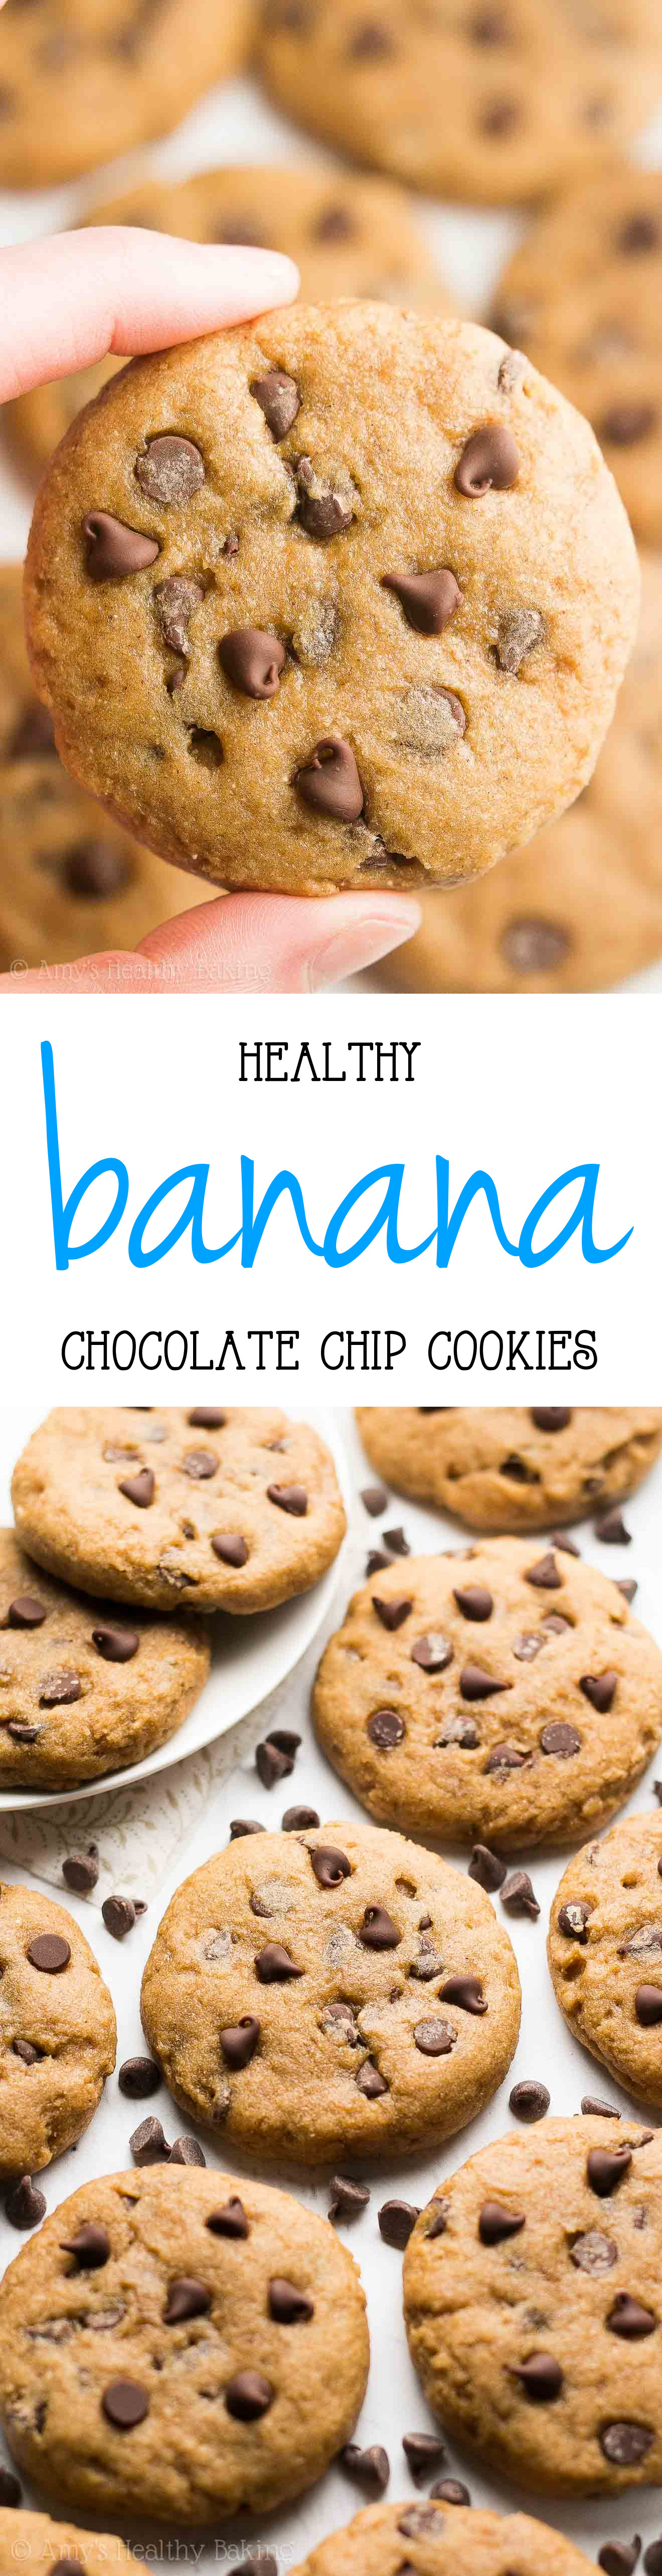 Healthy Banana Chocolate Chip Cookies  Healthy Banana Chocolate Chip Cookies Recipe Video